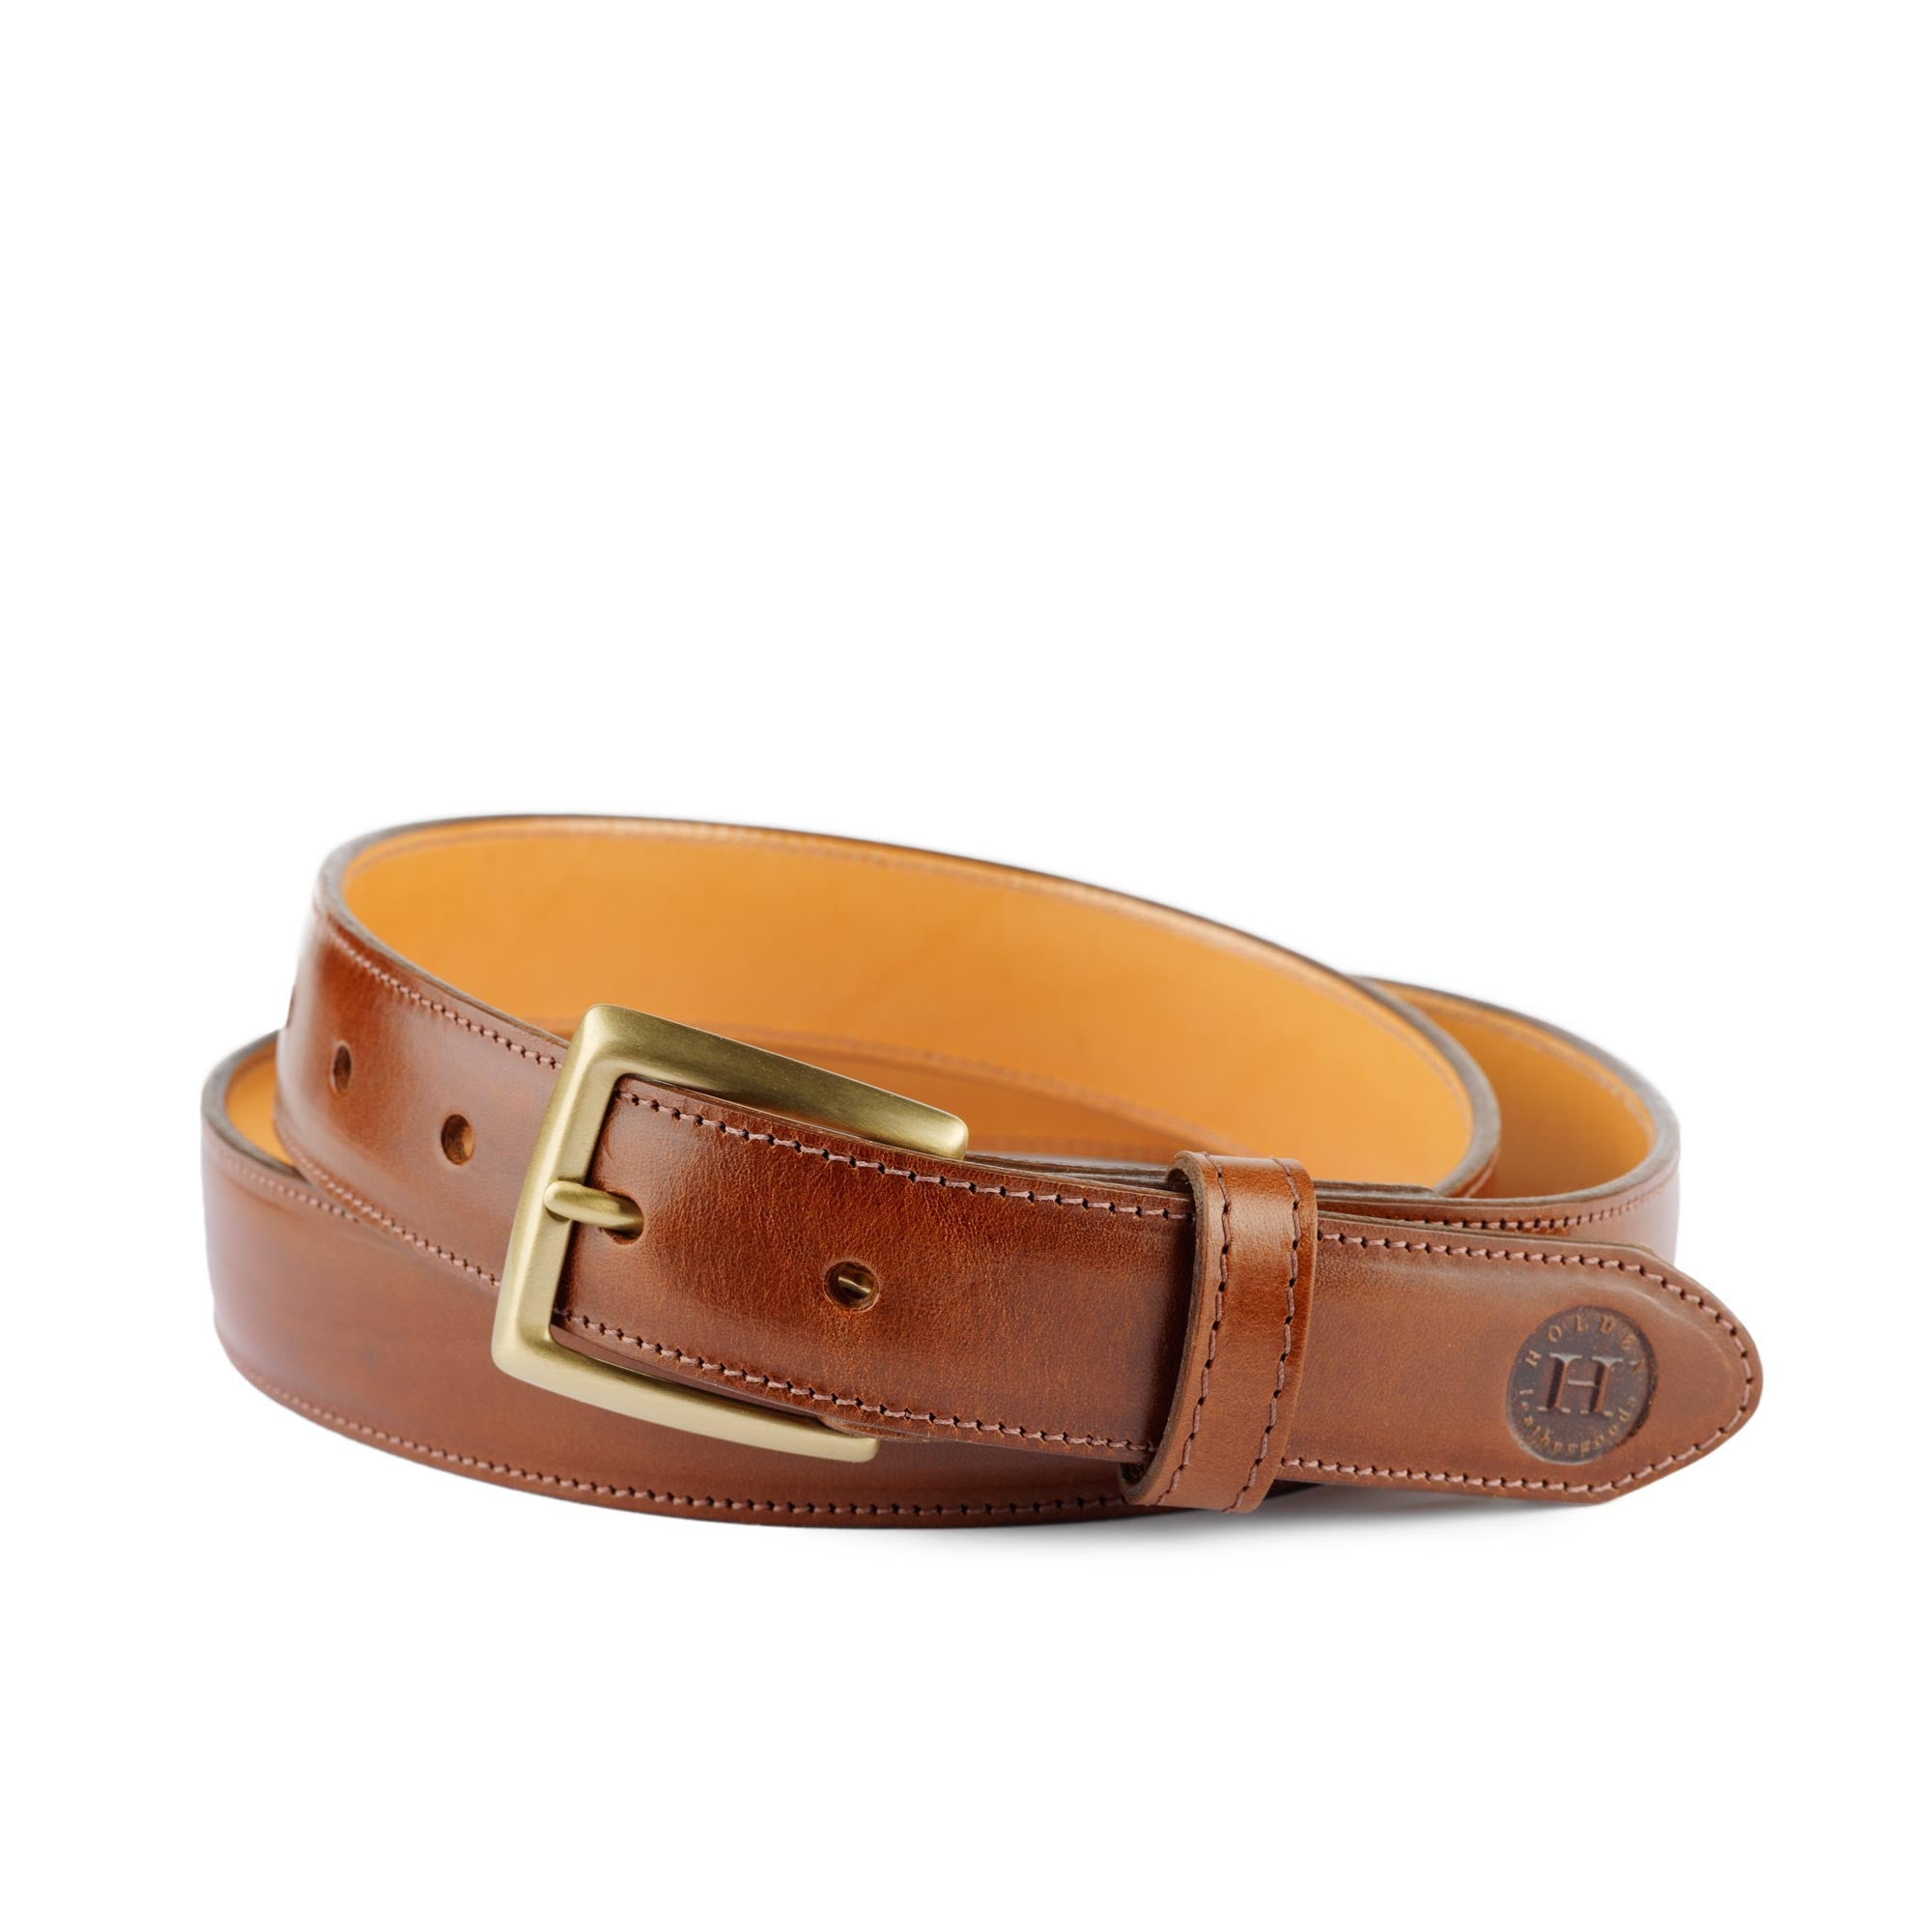 Holden Leather Dress Belt DB2 Chestnut - Holden Leathergoods, leather bags handmade in Ireland